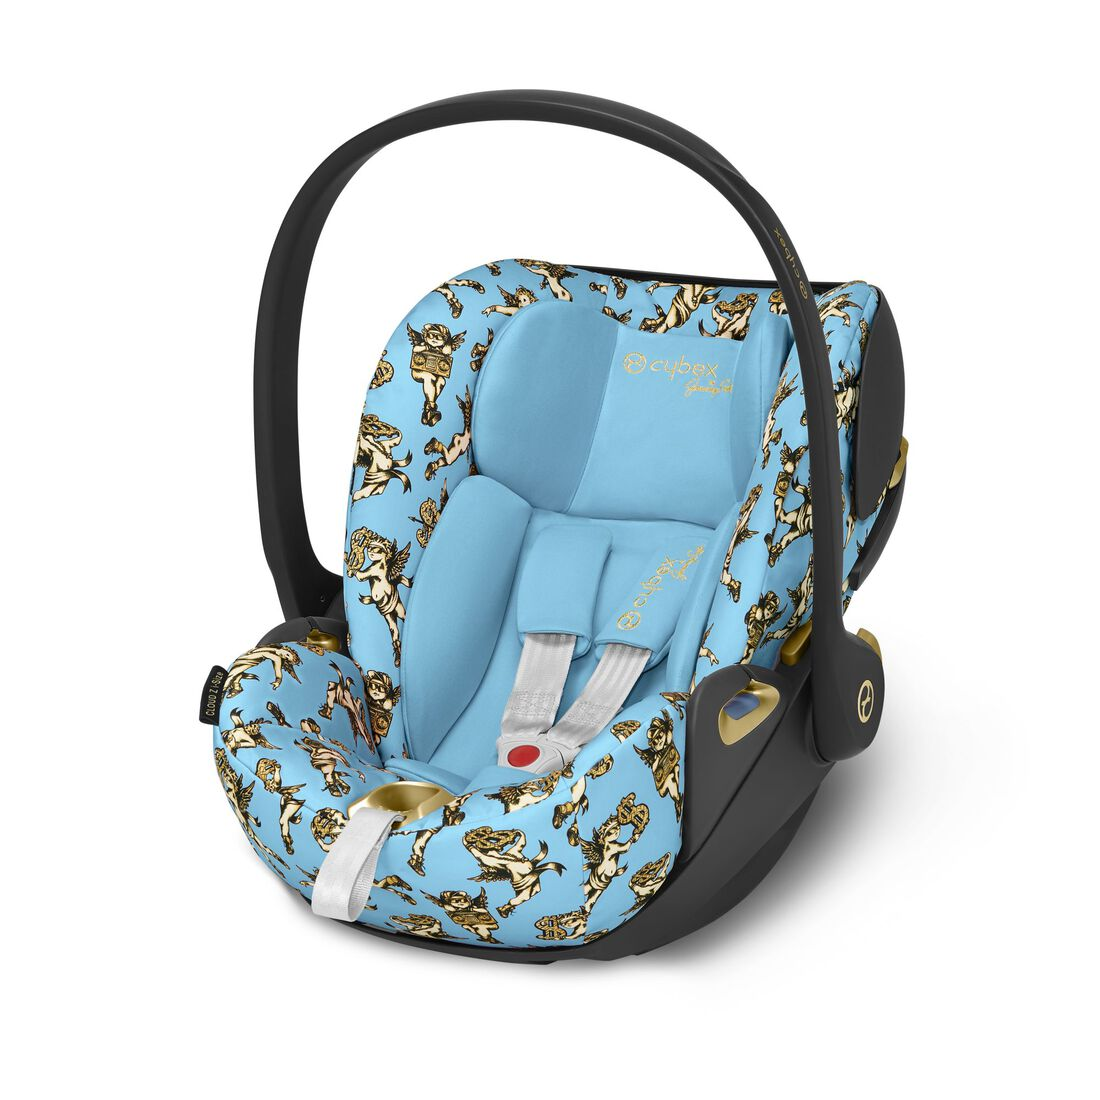 CYBEX Cloud Z i-Size - Cherubs Blue in Cherubs Blue large image number 2